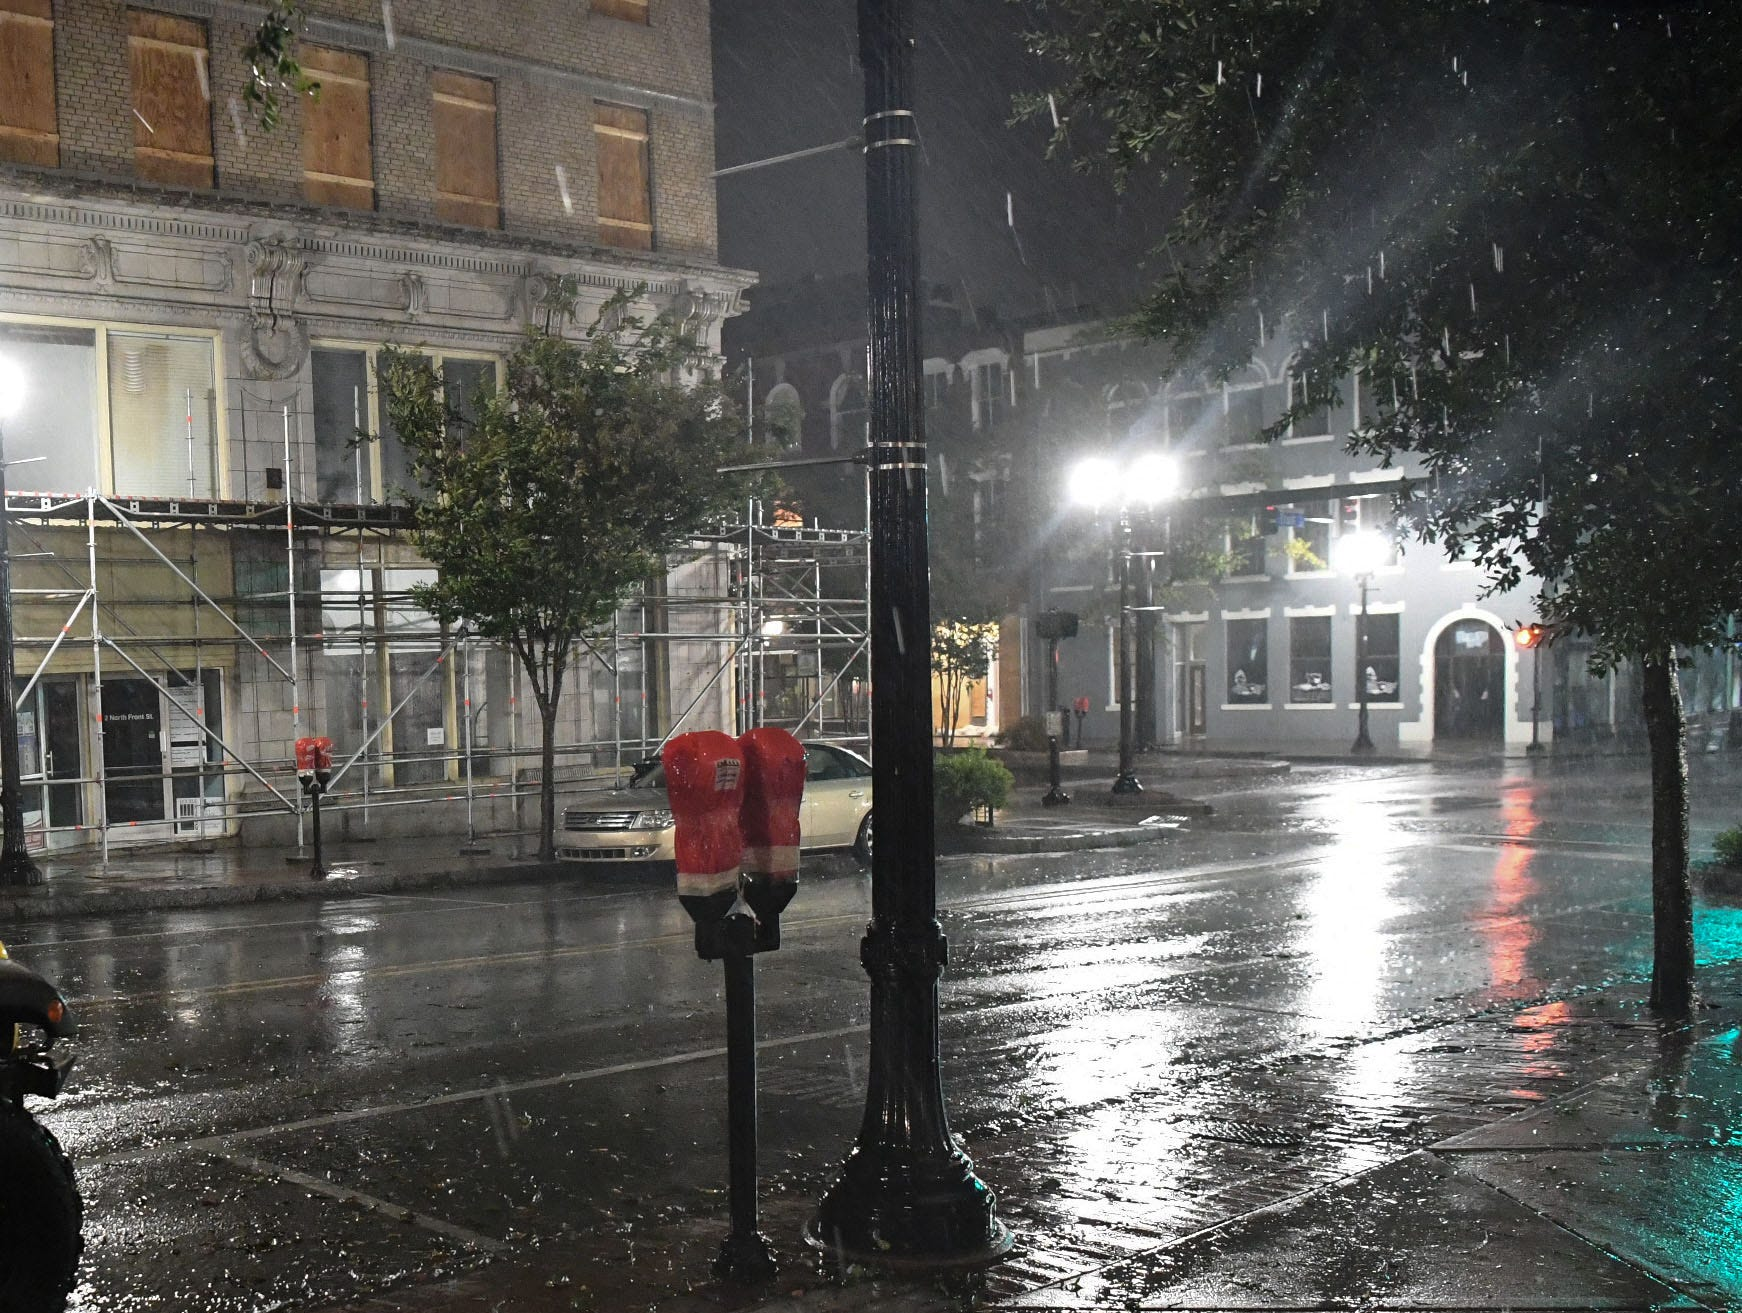 Windows and a parking meter is are covered while wind and rain gust early in the morning in downtown Wilmington, North Carolina on Friday, September 14, 2018. (Ken Ruinard / Greenville News / Gannett USA Today Network / 2018 )